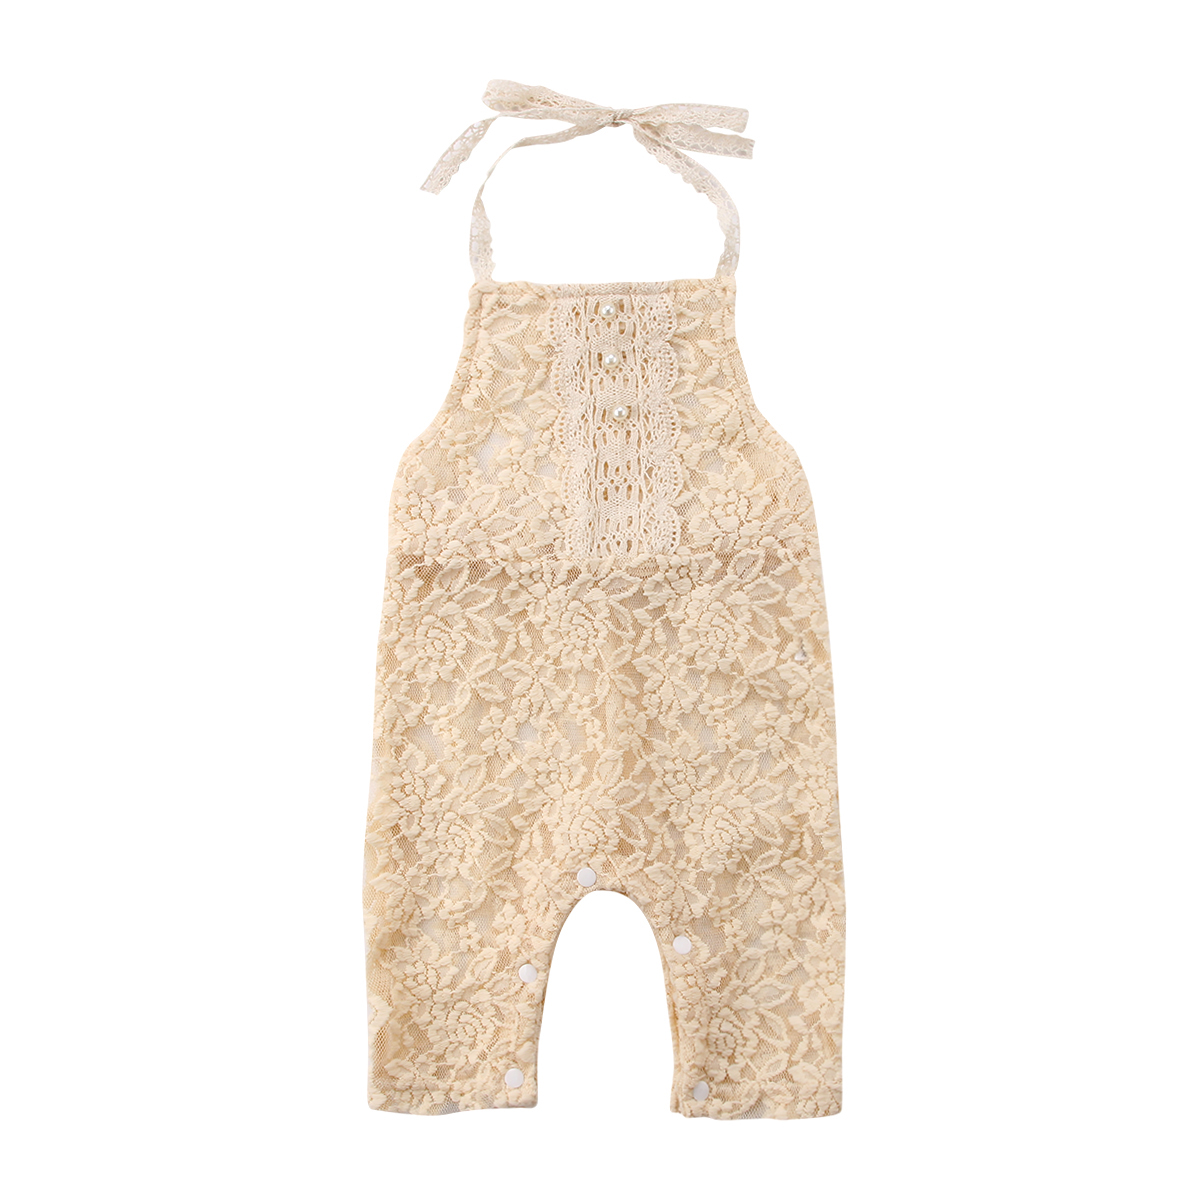 Newborn Toddle Infant Baby Girls Clothes Lace Pearl Floral Halter Sleeveless   Romper   Jumpsuit Playsuit Fashion Baby Girl 0-24M